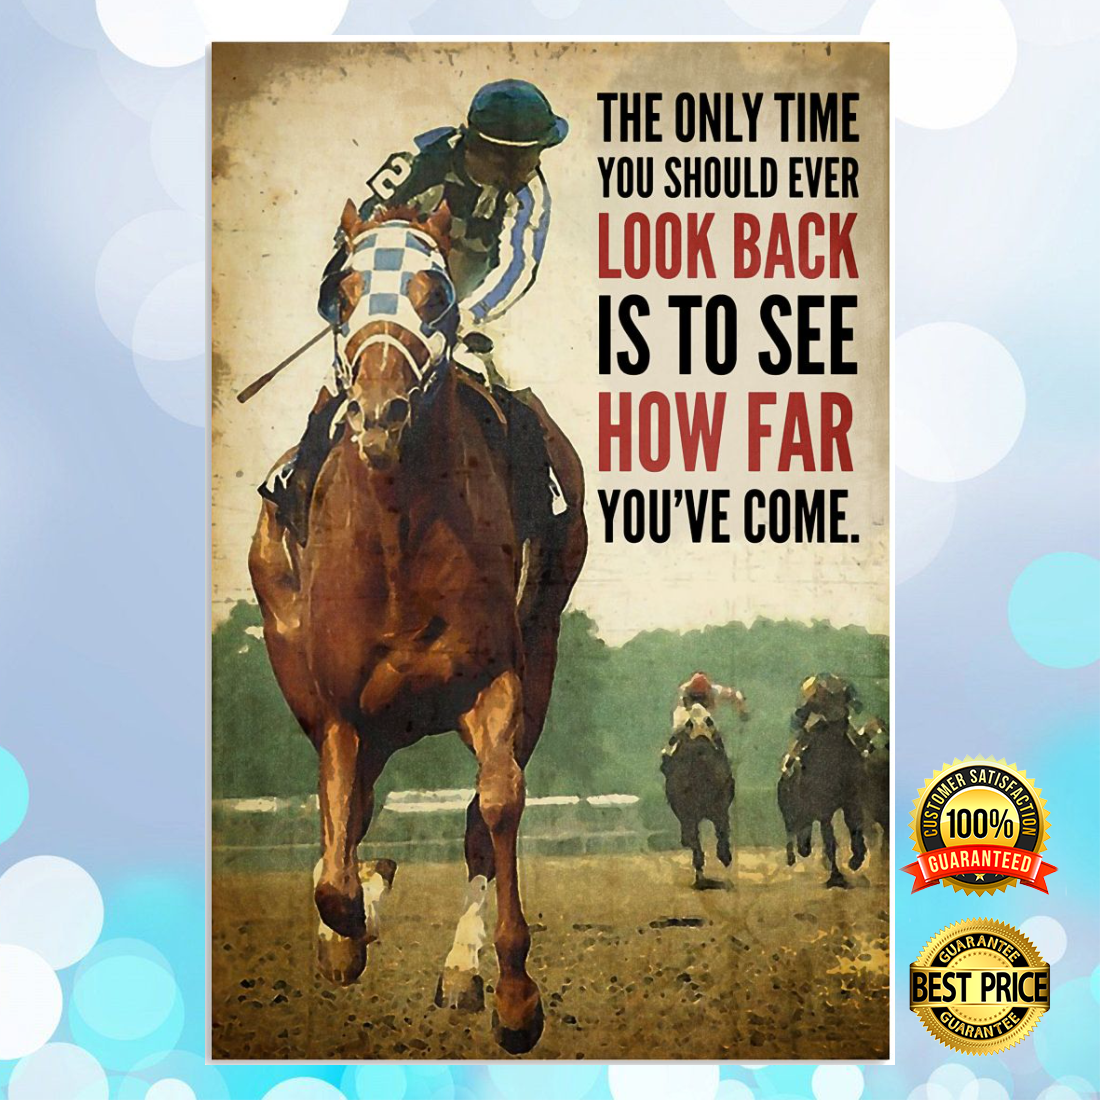 HORSE RACING THE ONLY TIME YOU SHOULD EVER LOOK BACK IS TO SEE HOW FAR YOU'VE COME POSTER 6